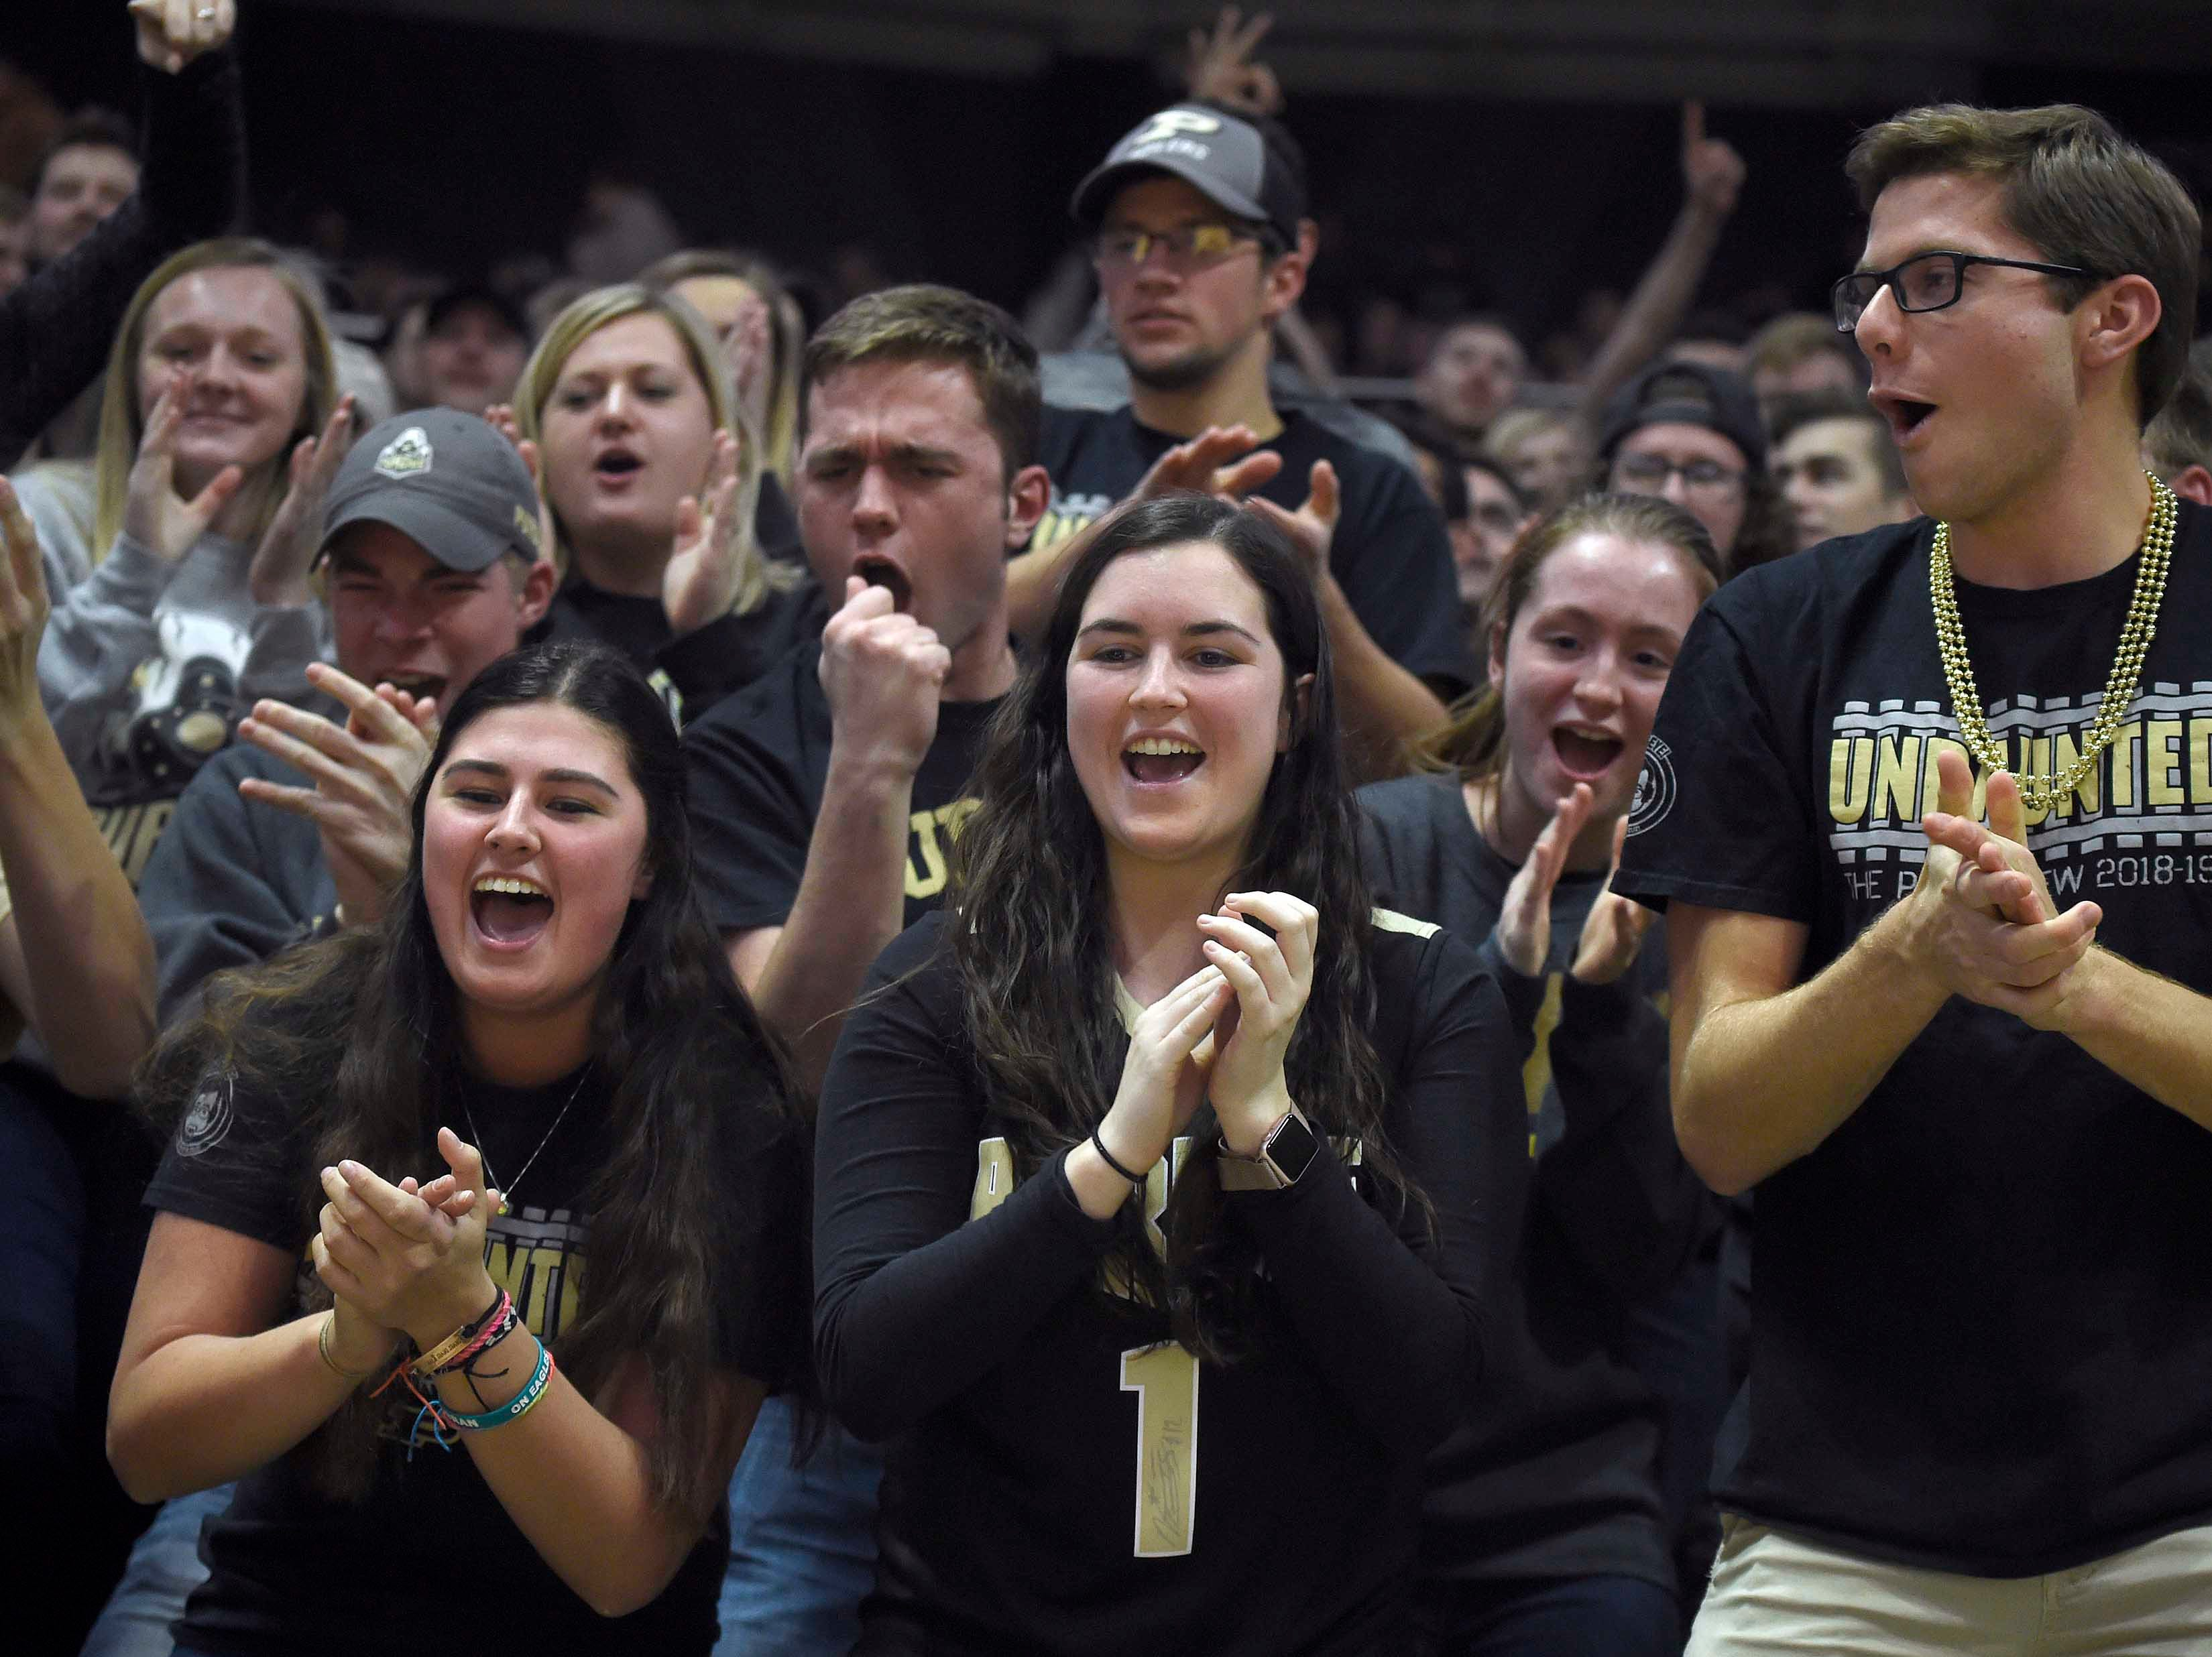 Jan 15, 2019; West Lafayette, IN, USA; members of the Purdue Boilermaker Paint Crew before the game at Mackey Arena. Mandatory Credit: Sandra Dukes-USA TODAY Sports